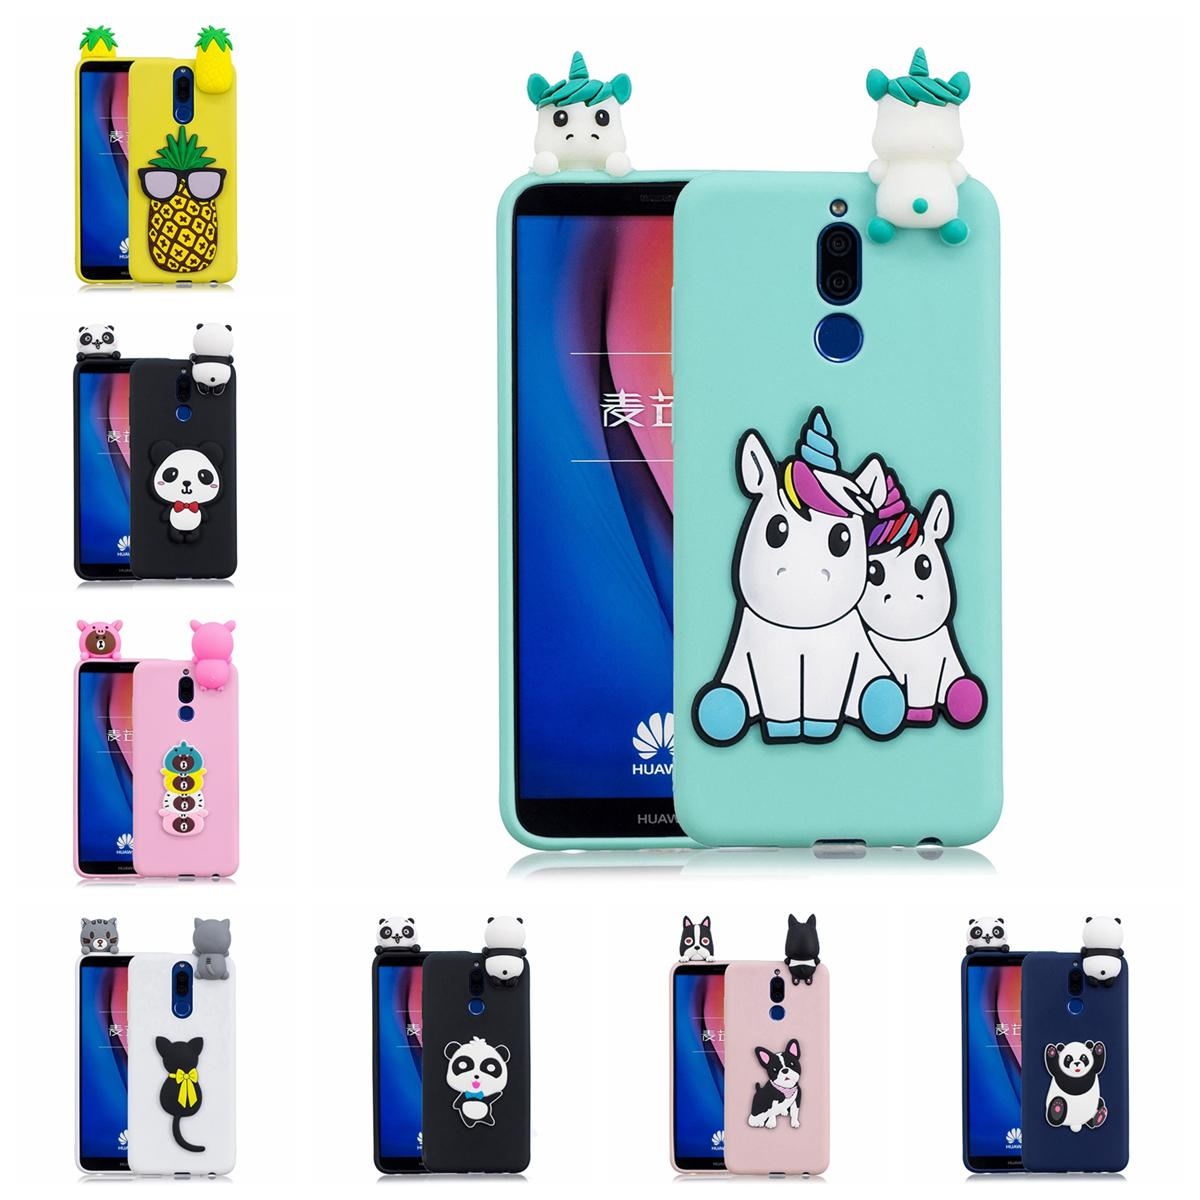 Pasted 3D Animal Case for Huawei Mate 10 Lite Head 6 TPU Cover Sticking a  Little Panda Doll 61 Models Option